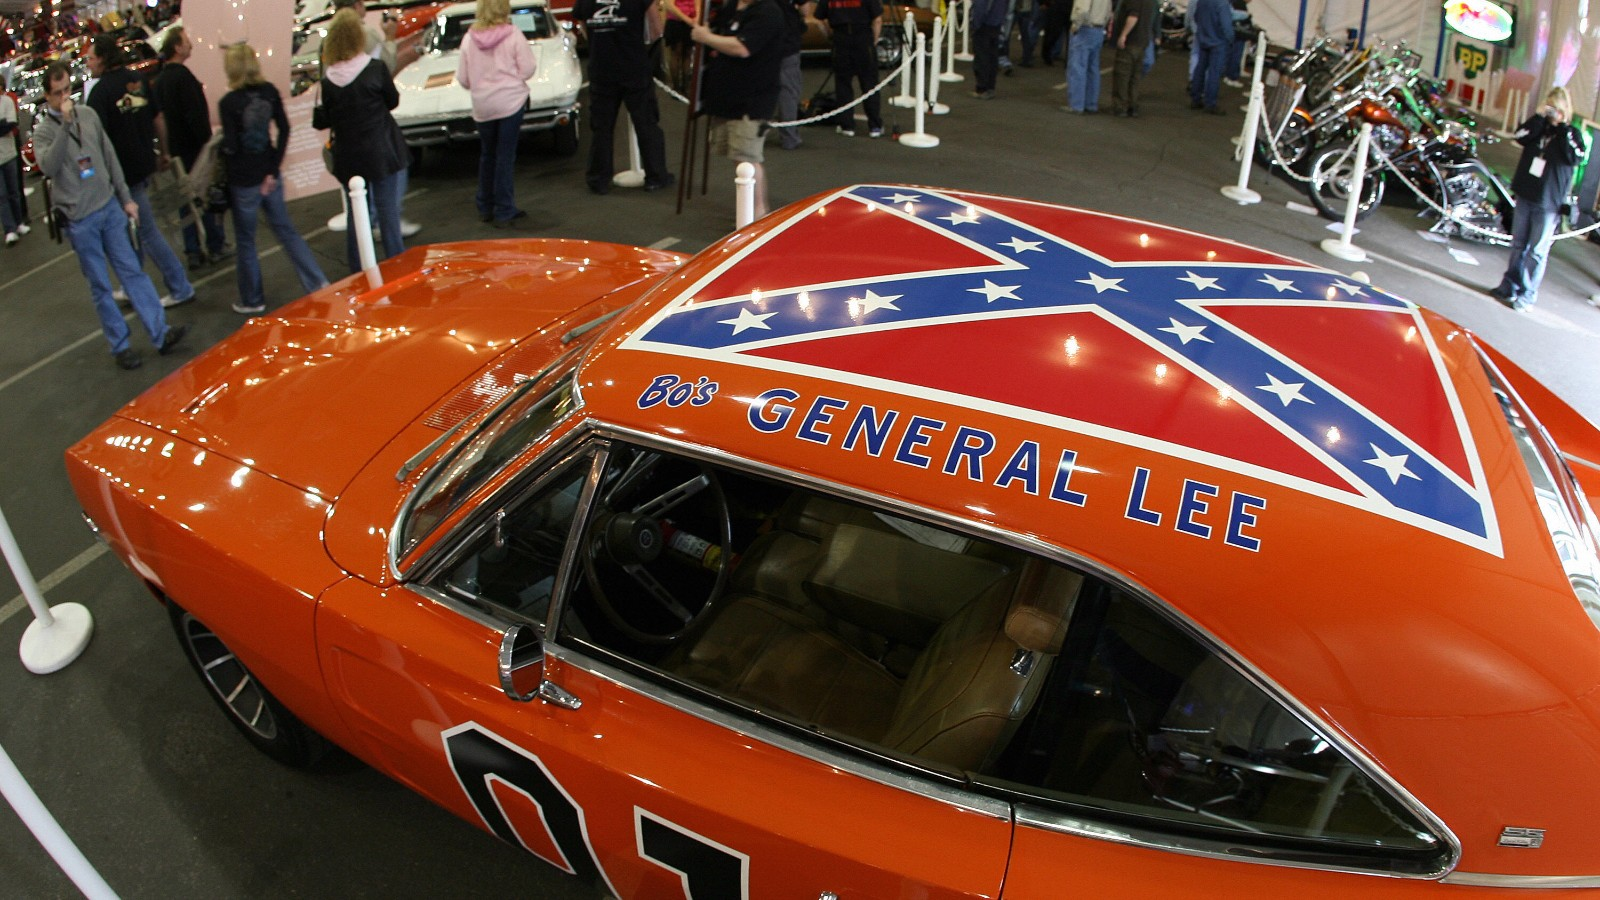 CAR MUSEUM: THE GENERAL LEE STAYS